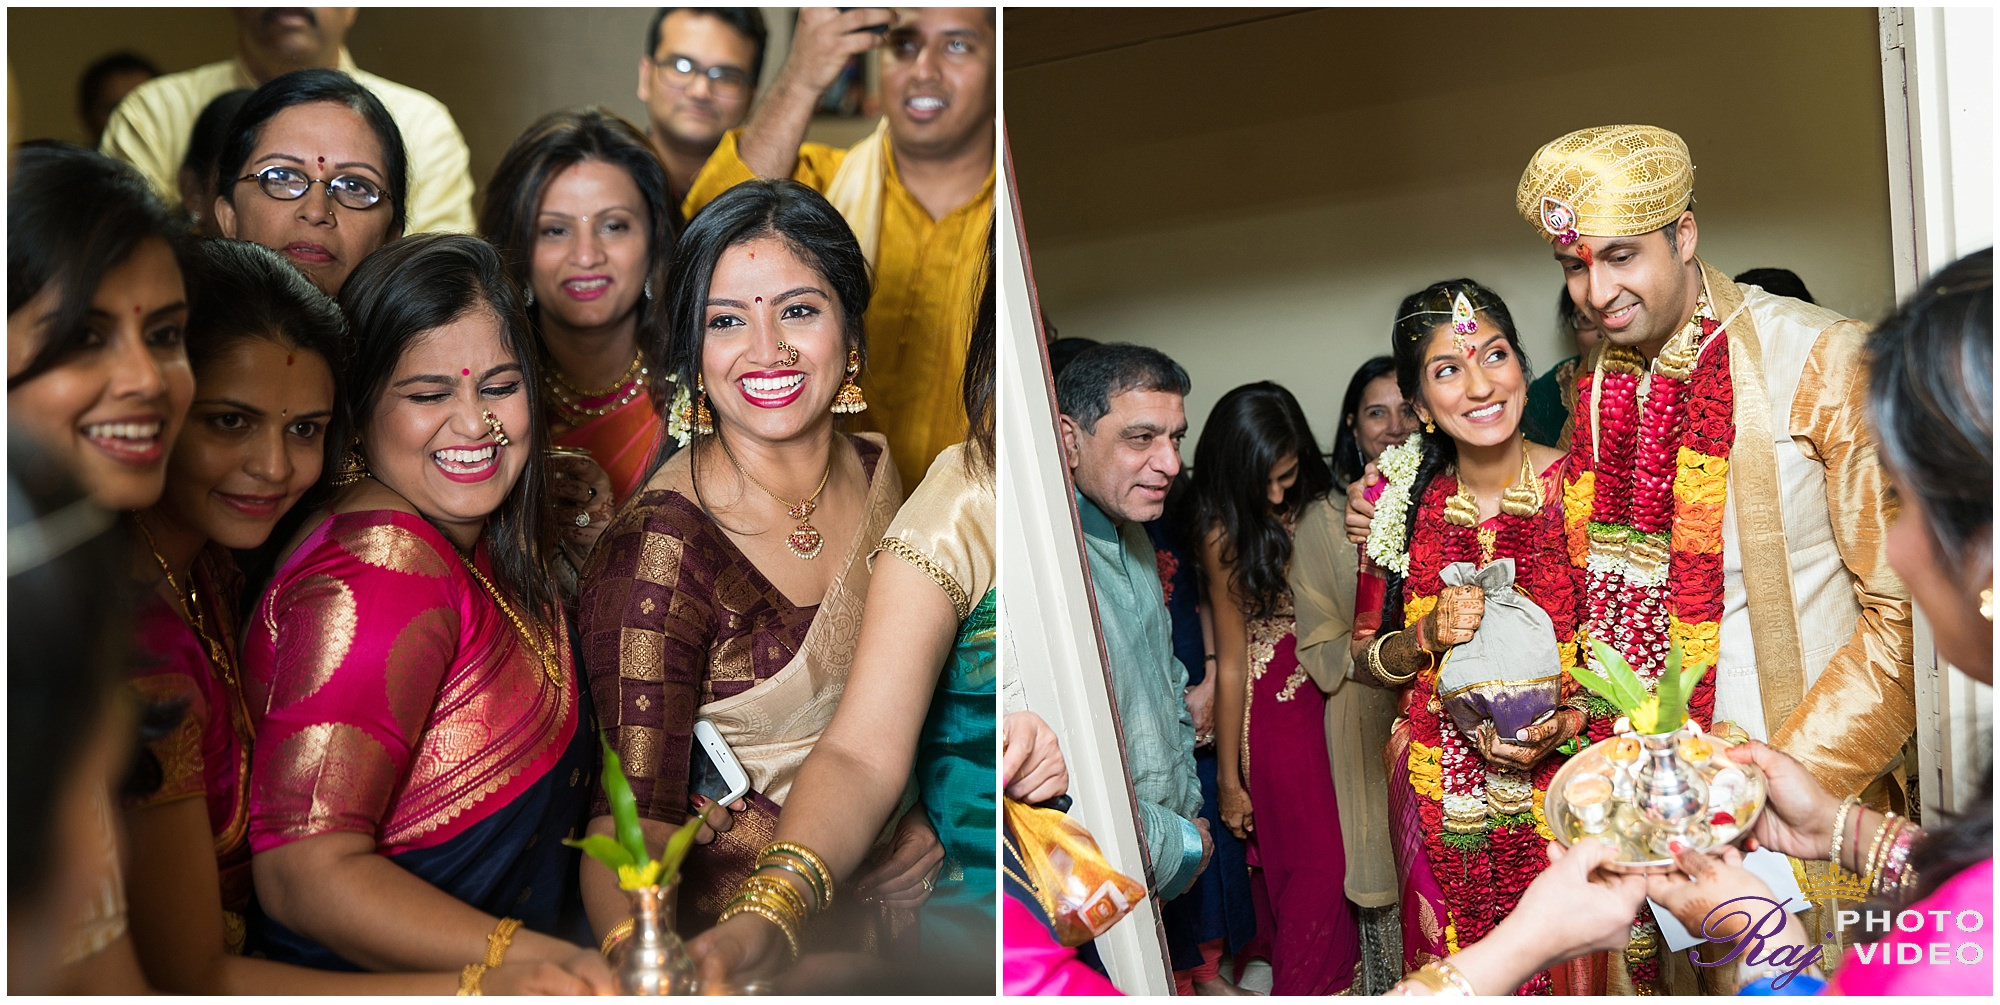 Sri_Venkata_Krishna_Kshetra_Temple_Tempe_Arizona_Indian_Wedding_Sapna_Shyam-17.jpg